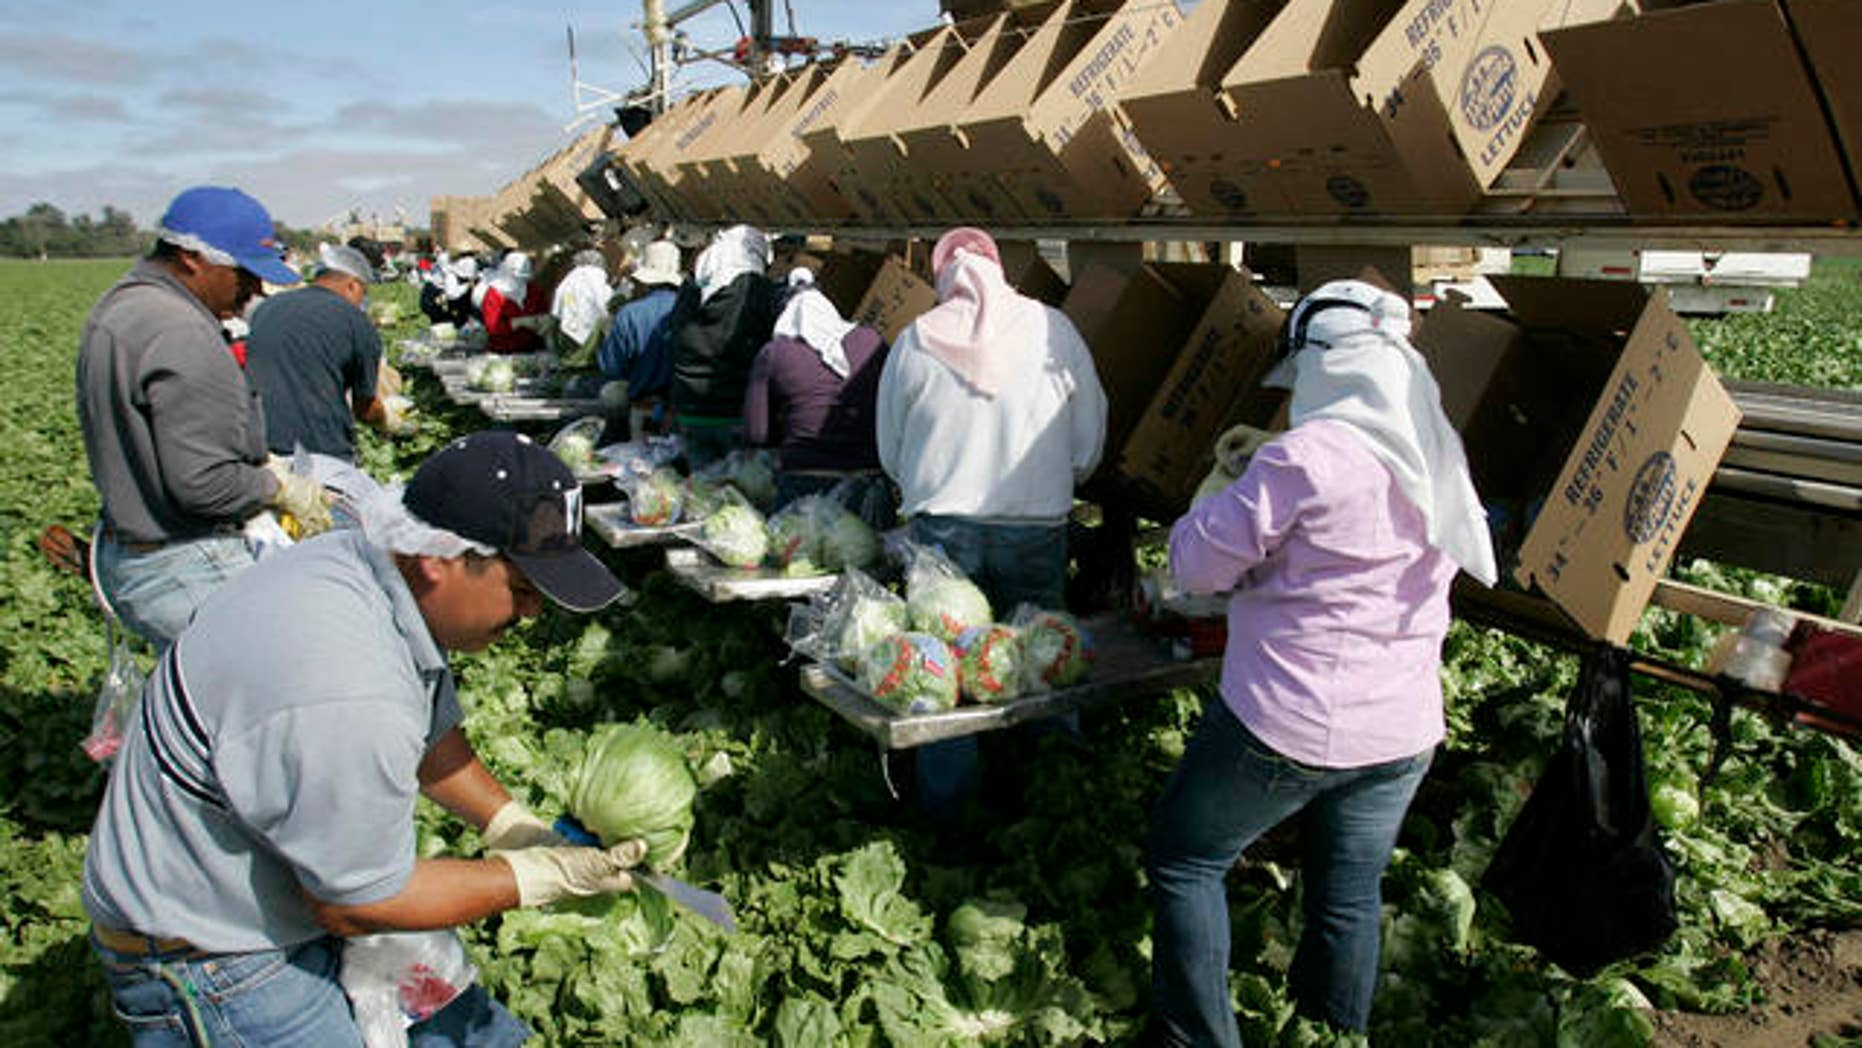 **FILE** Workers pick lettuce in Salinas, Calif., in this June 4, 2007 file photo. The number of newly laid off people signing up for jobless benefits went up modestly last week, although the latest figures suggest employment conditions around the country remain good. The Labor Department reported Thursday, Aug. 2, 2007 that new applications filed for unemployment insurance rose by a seasonally adjusted 4,000 to 307,000 for the week ending July 28. That was a better showing than economists expected; they were forecasting claims to rise to 310,000. (AP Photo/Paul Sakuma, file)